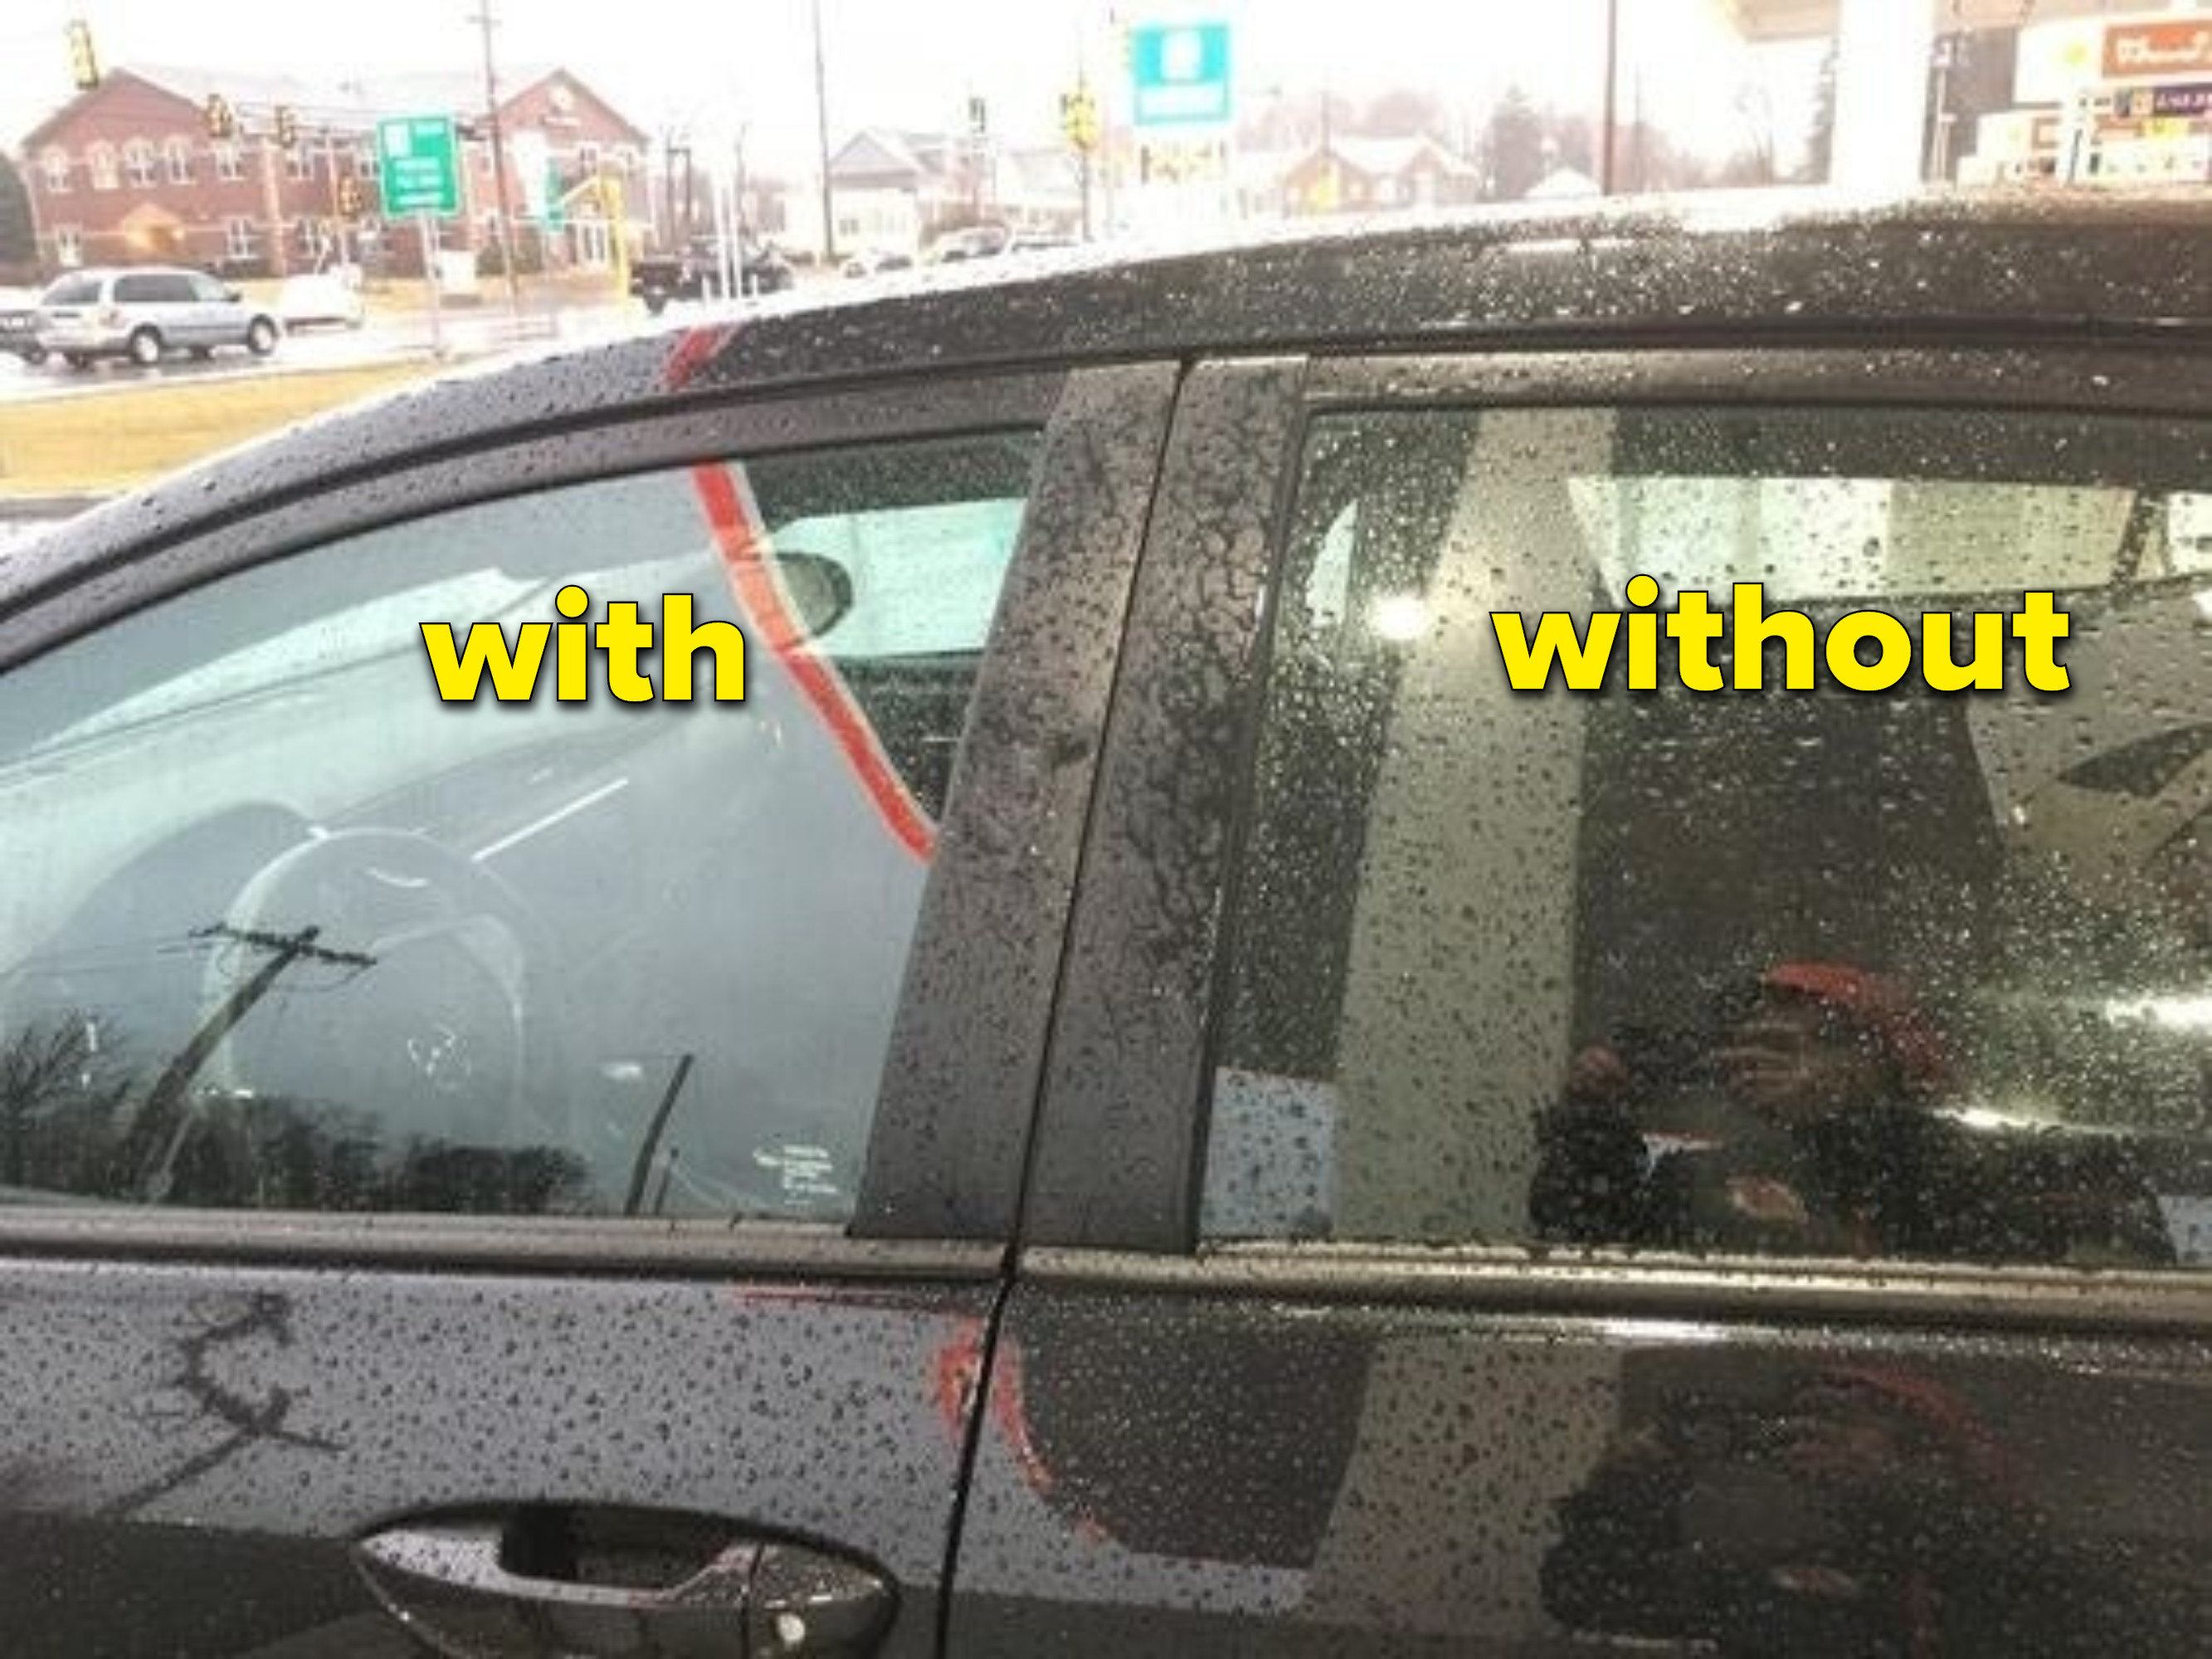 Reviewer's car to show how one window is clear, while the other untreated window is covered in raindrops